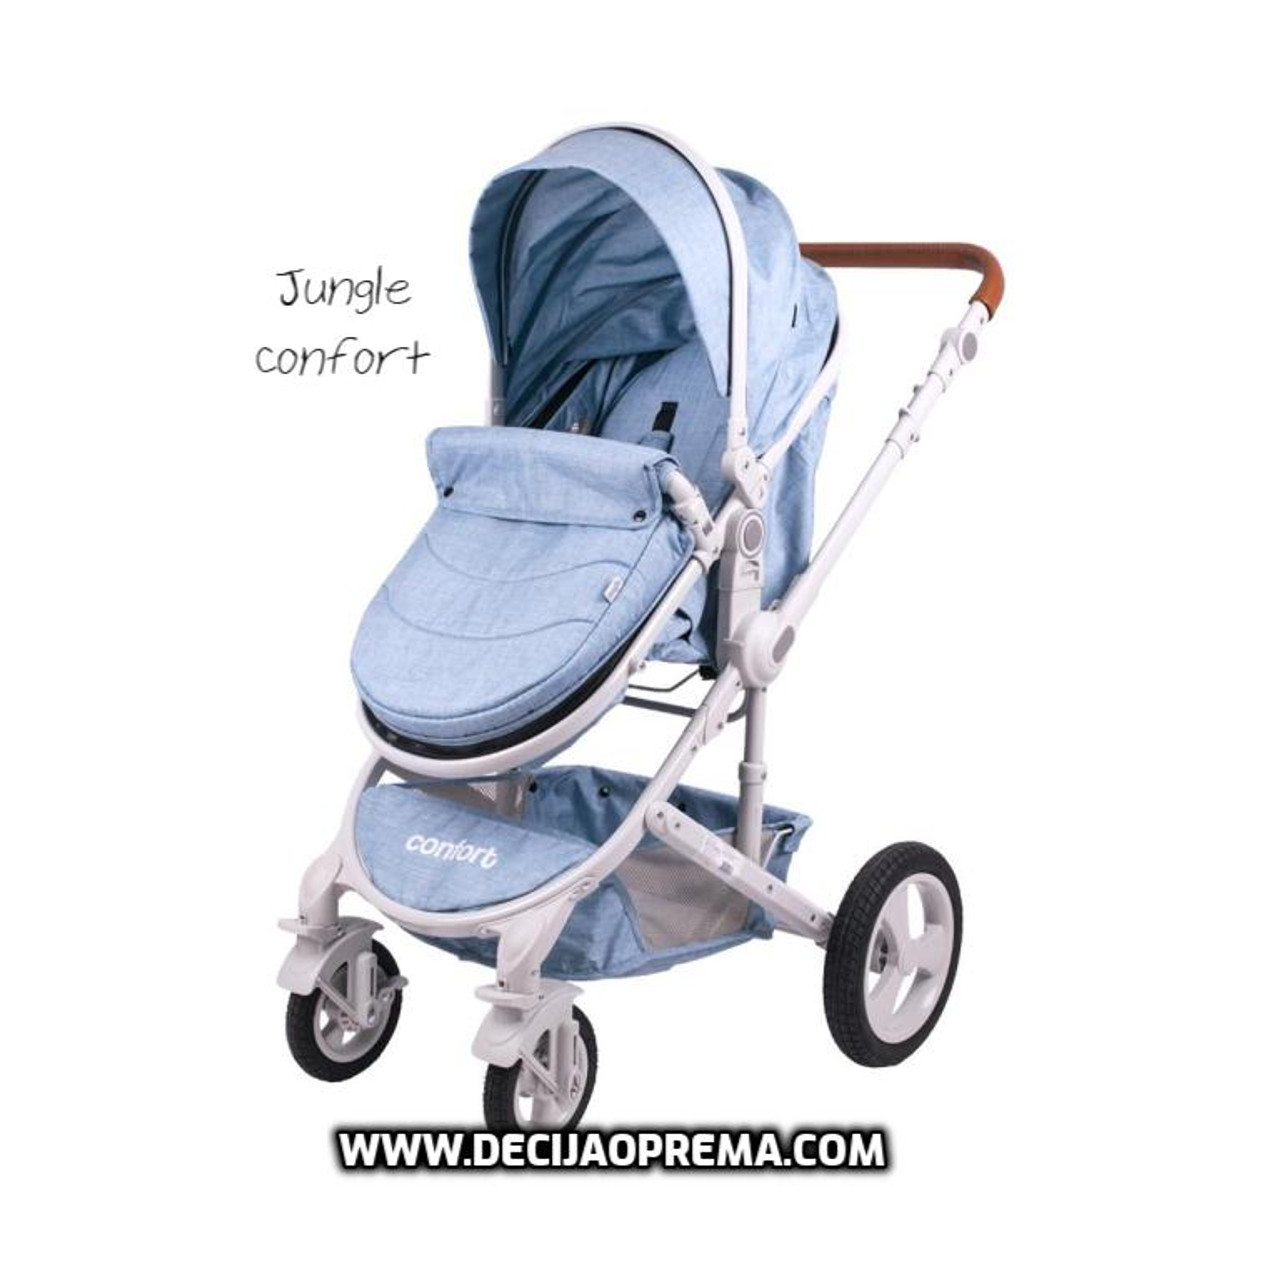 Kolica za bebe Jungle Comfort Blue